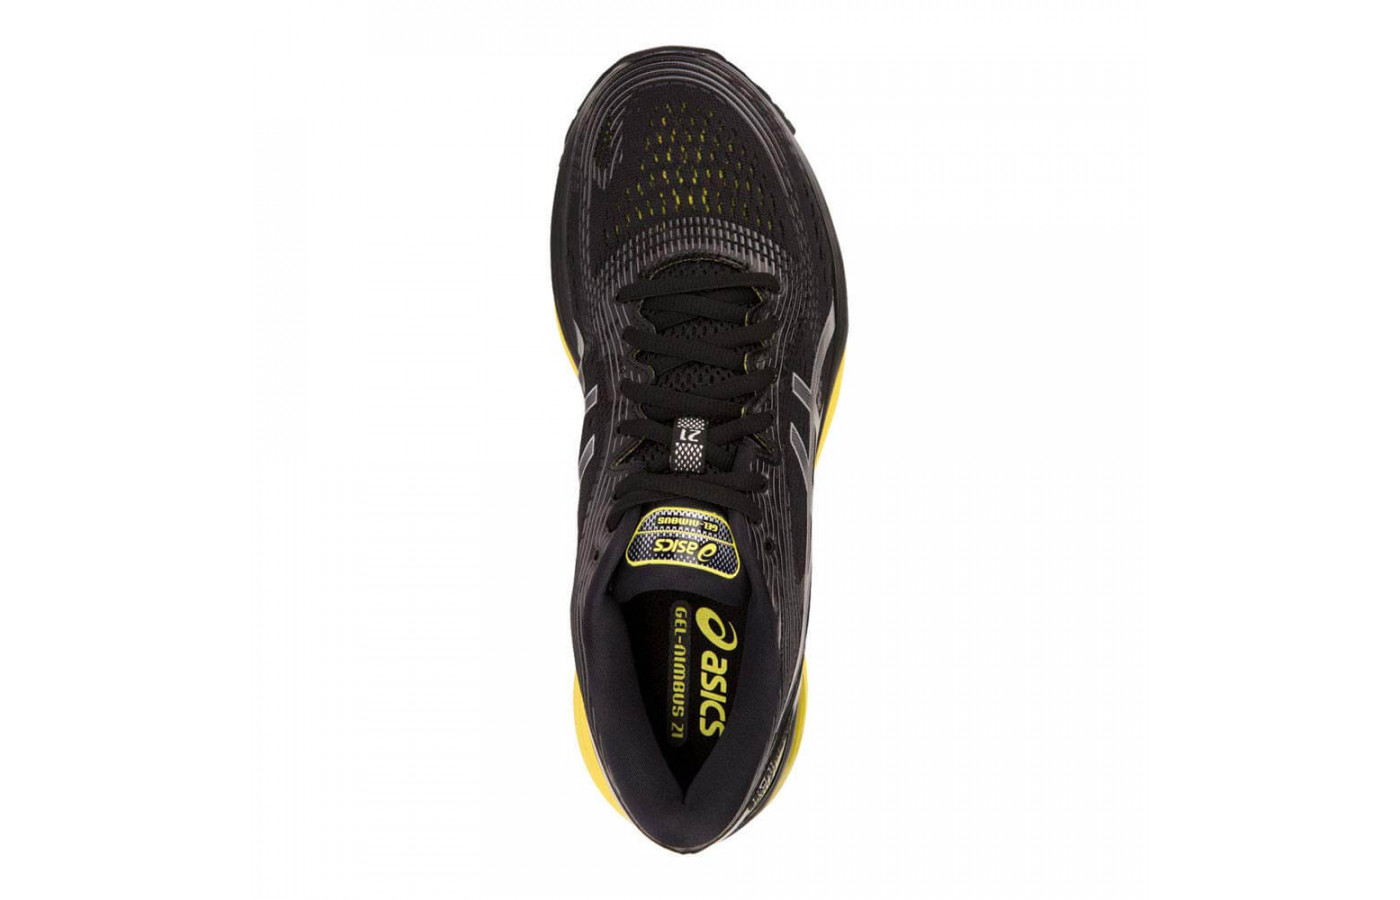 Asics Gel Nimbus 21 running shoes